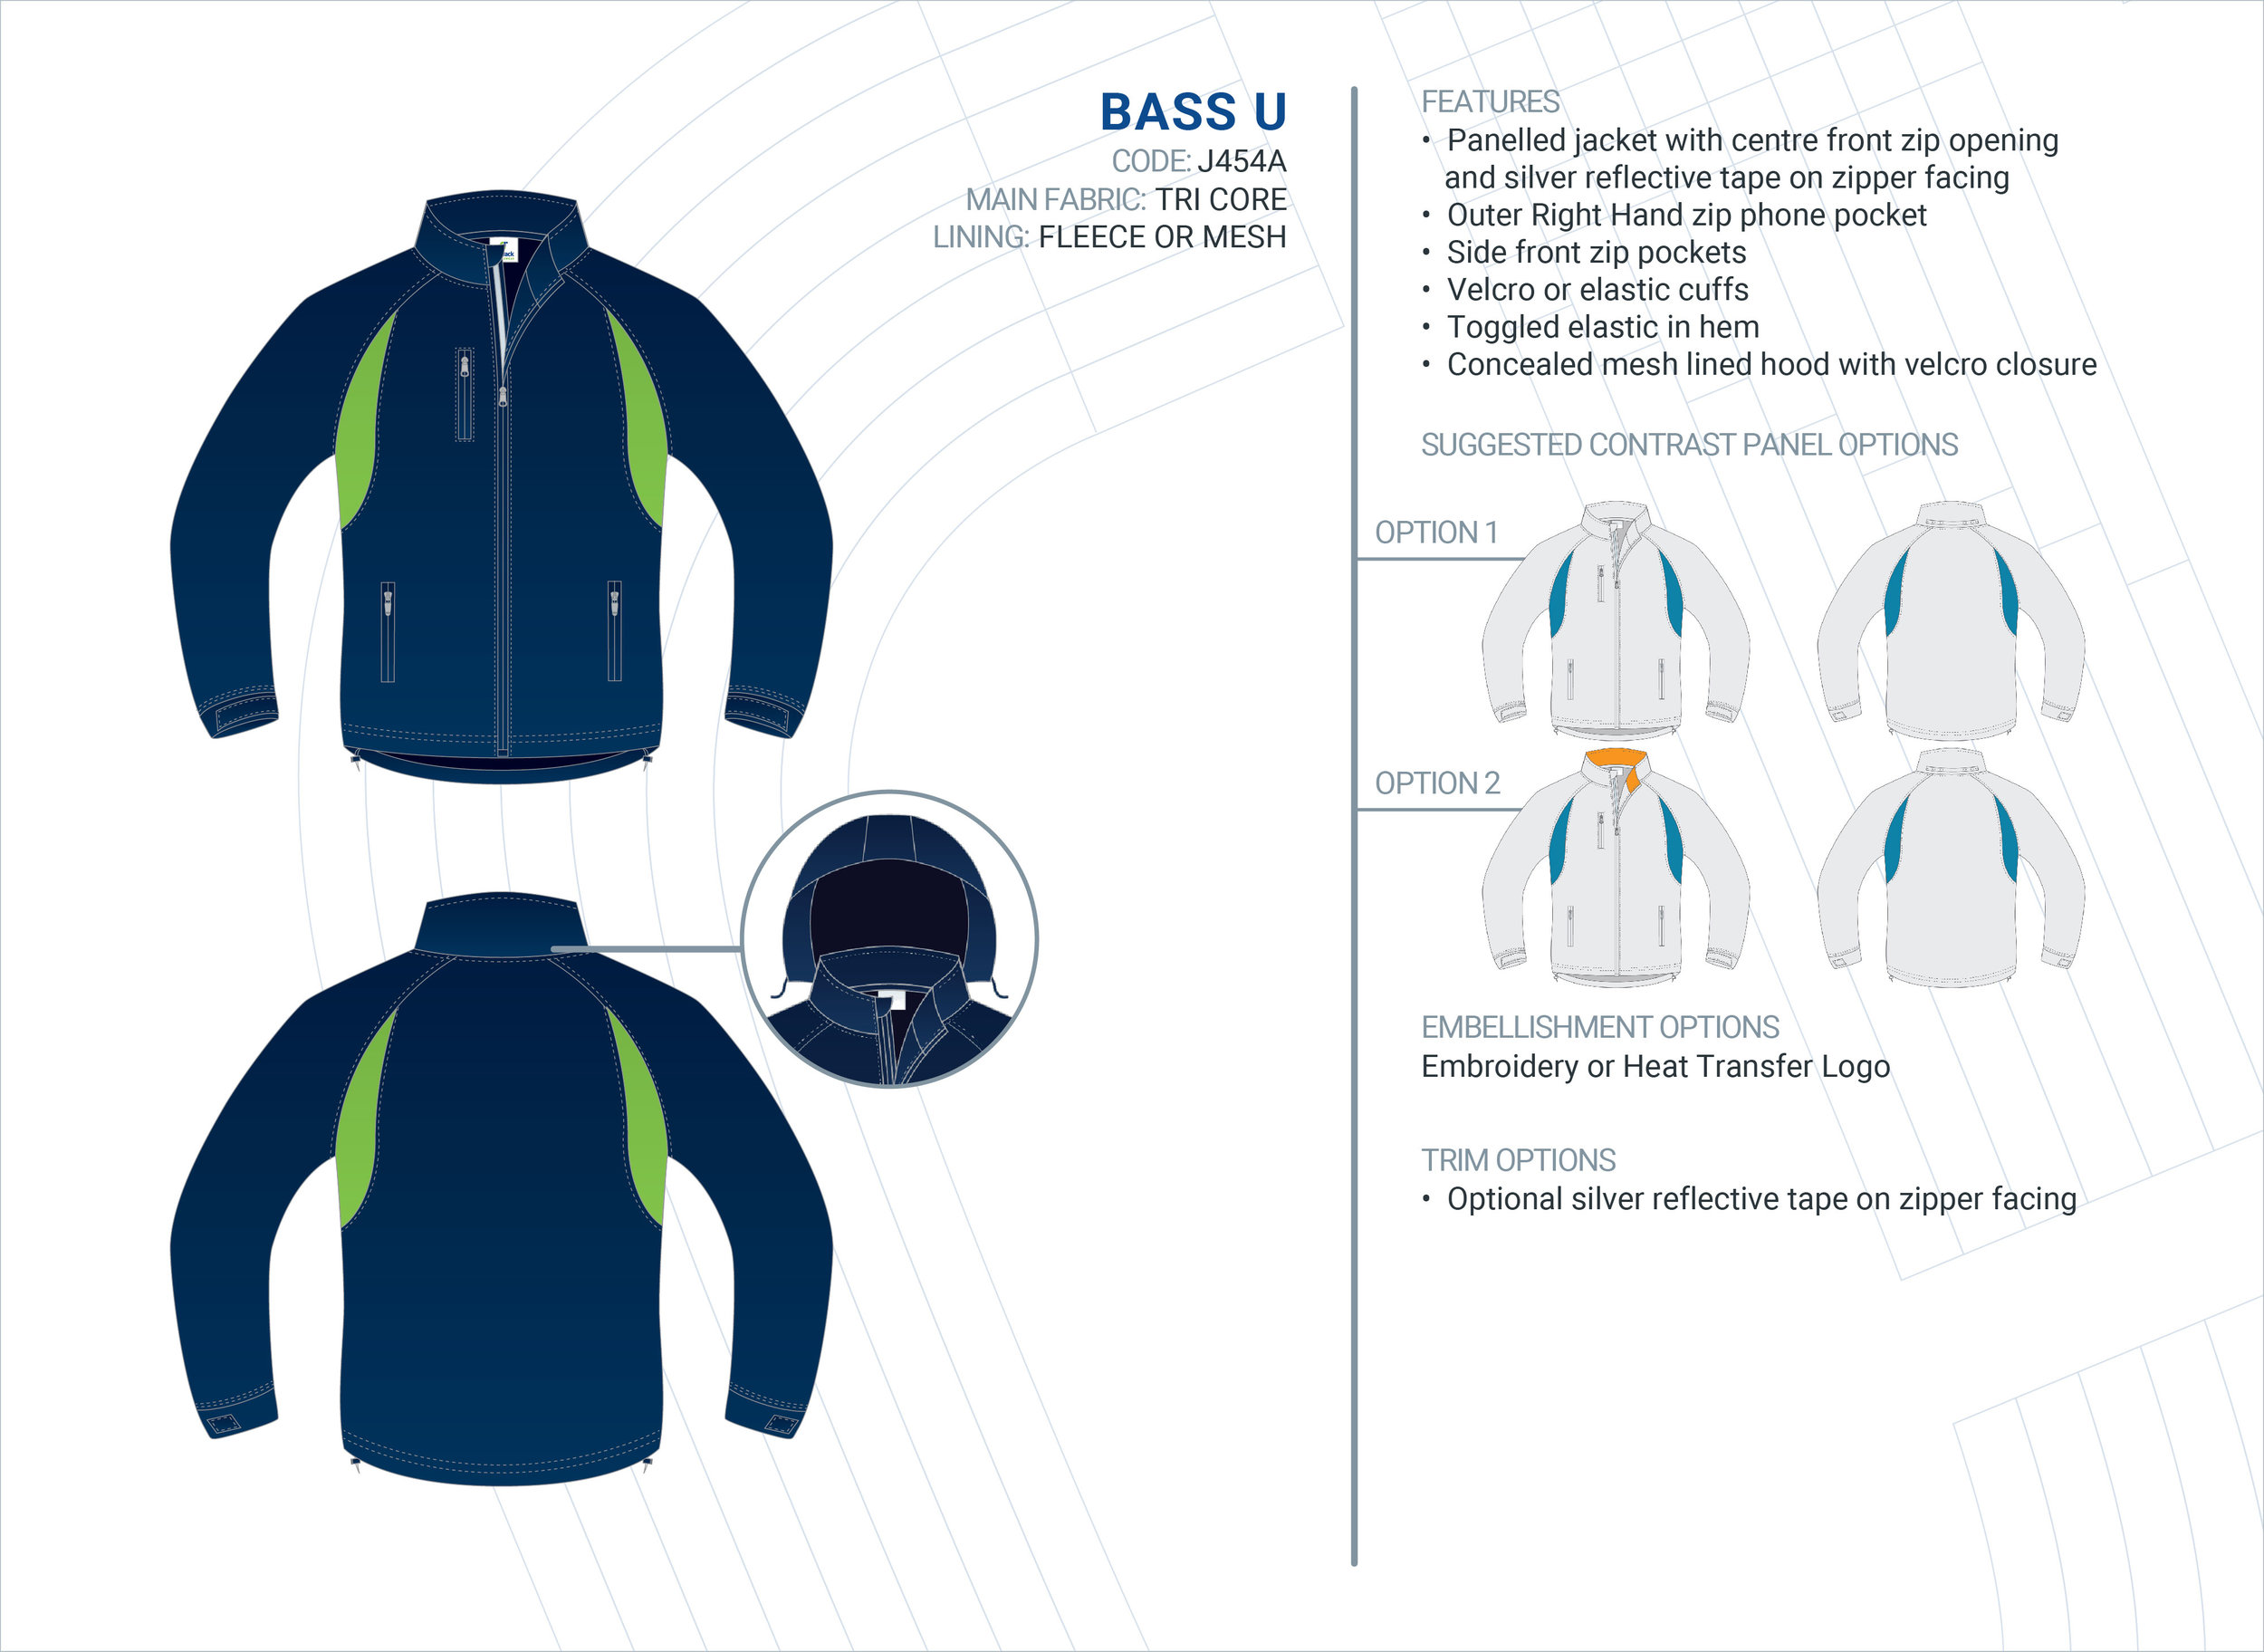 Unisex  Bass  Tri-Core Jacket